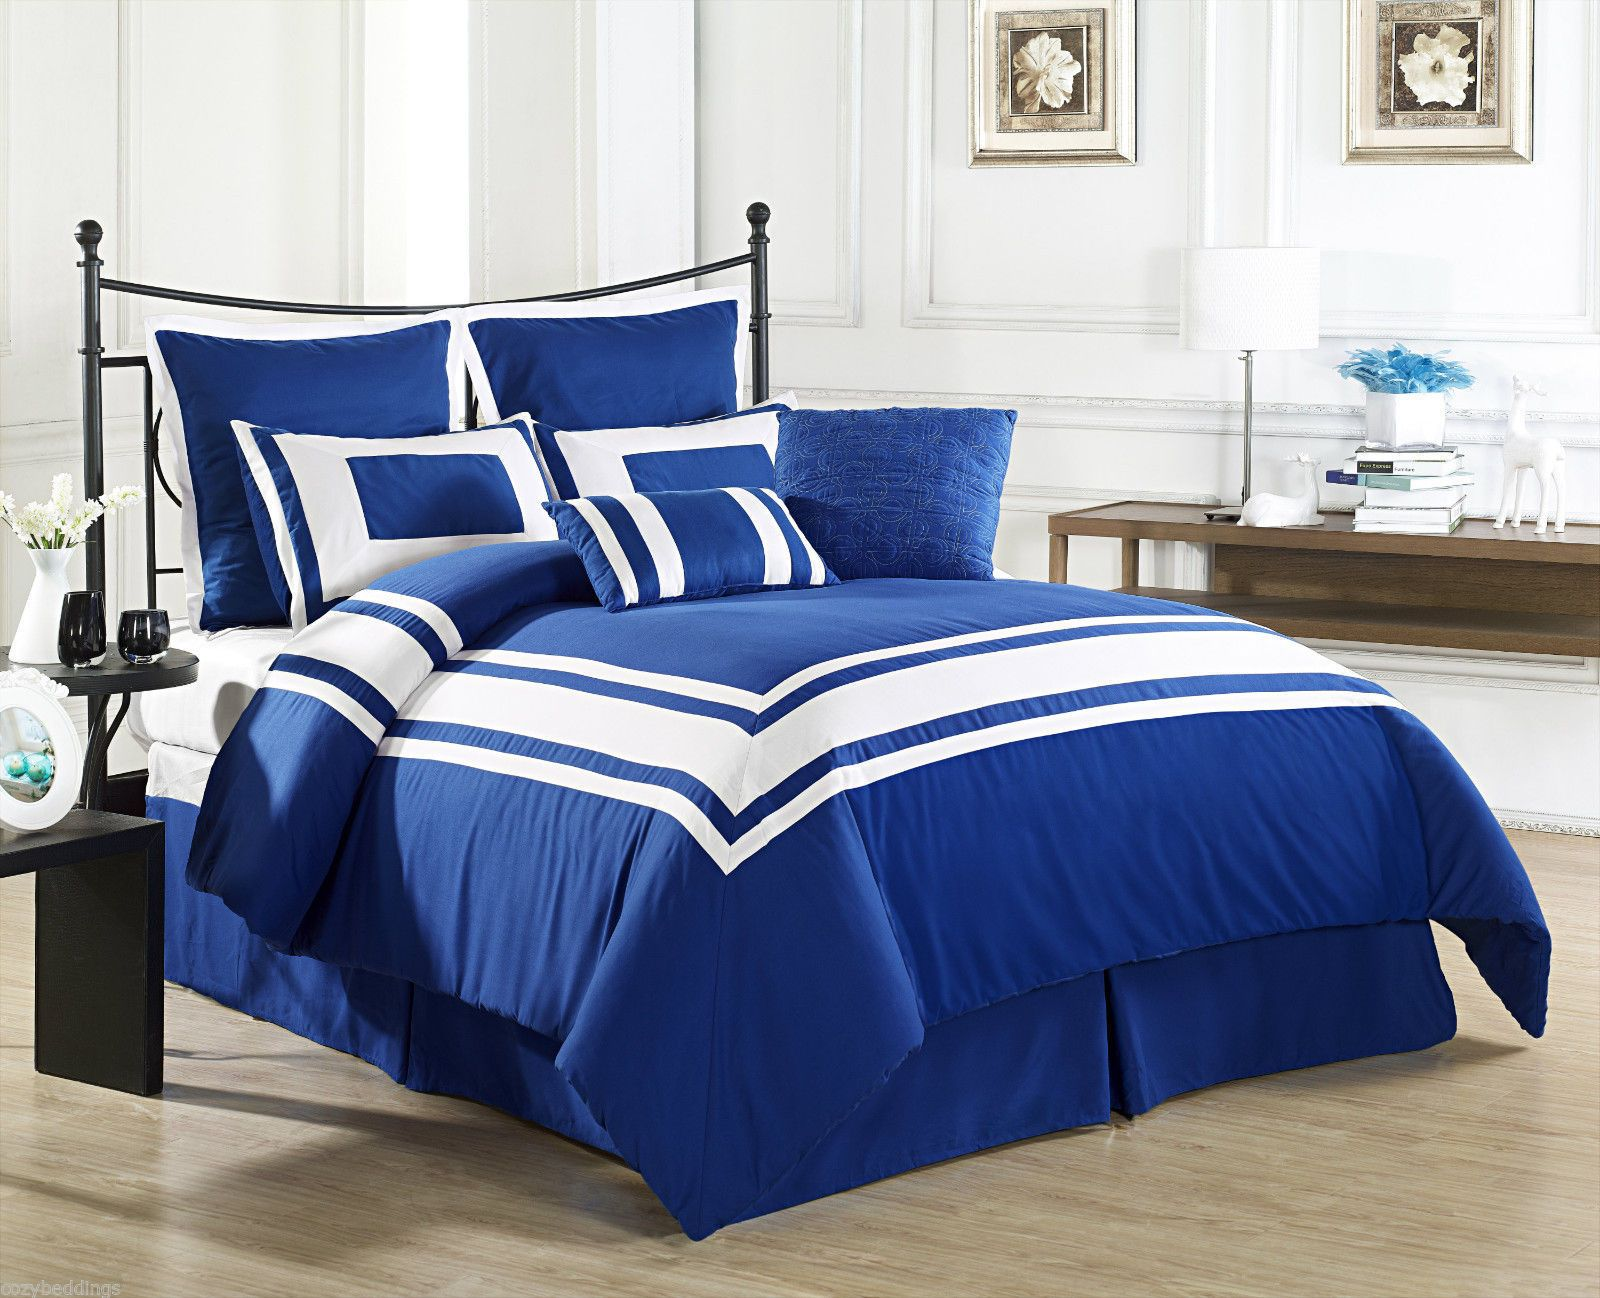 Lux Decor Royal Blue Queen Size Bed 8 Piece Comforter Set White